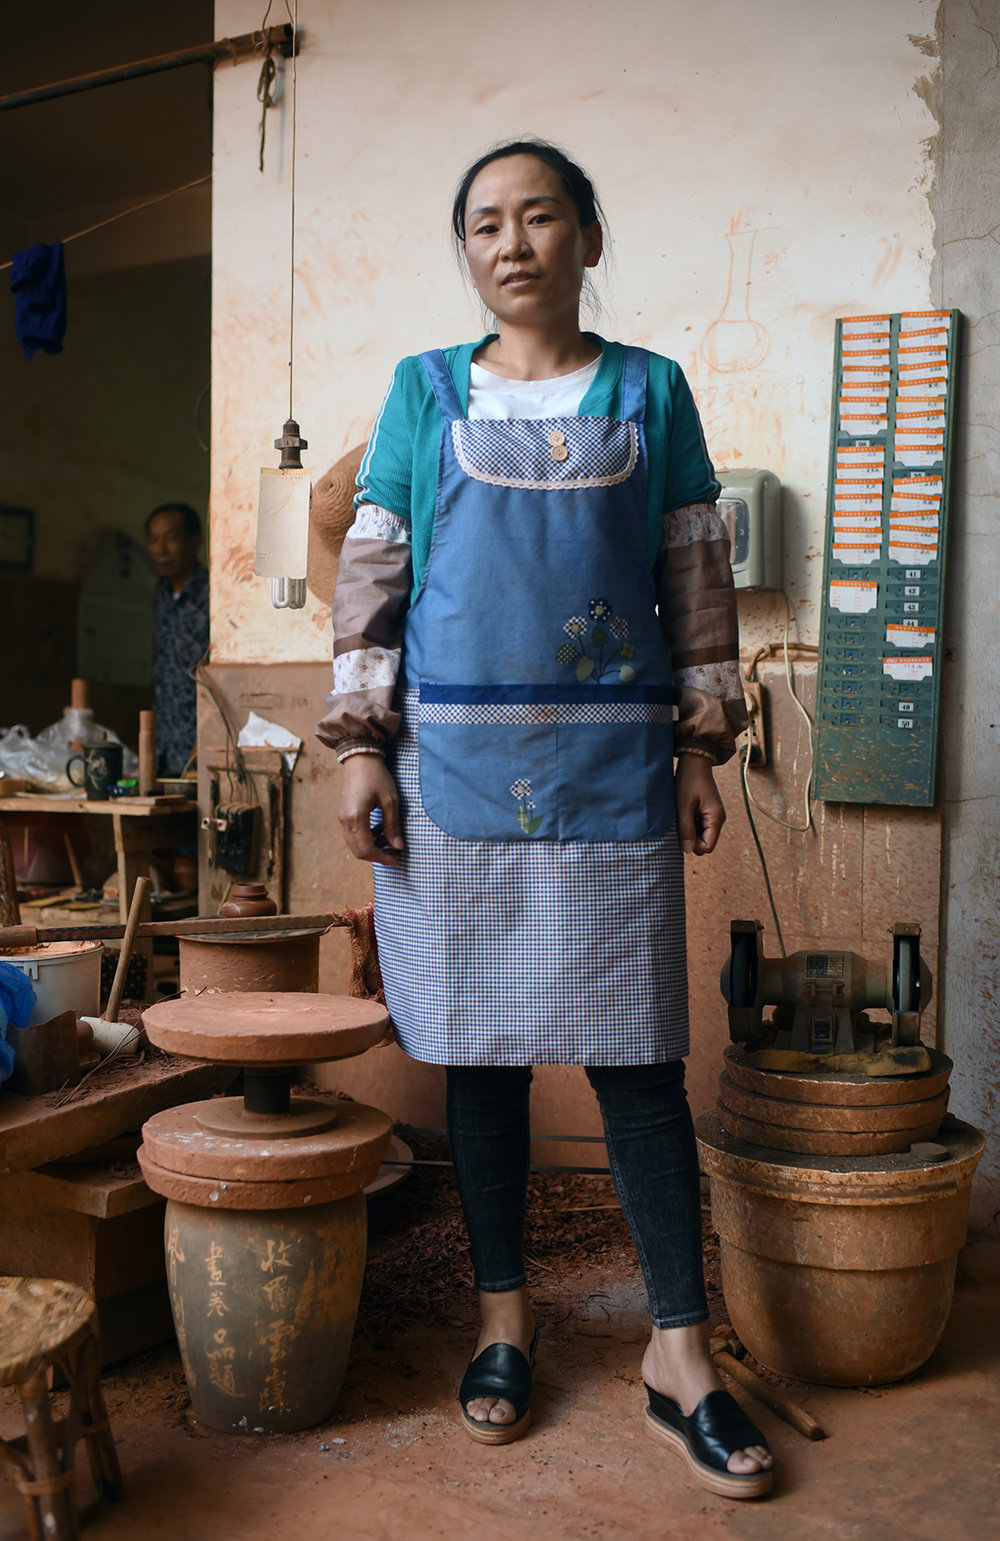 Purple pottery apprentice, Jianshui 2017